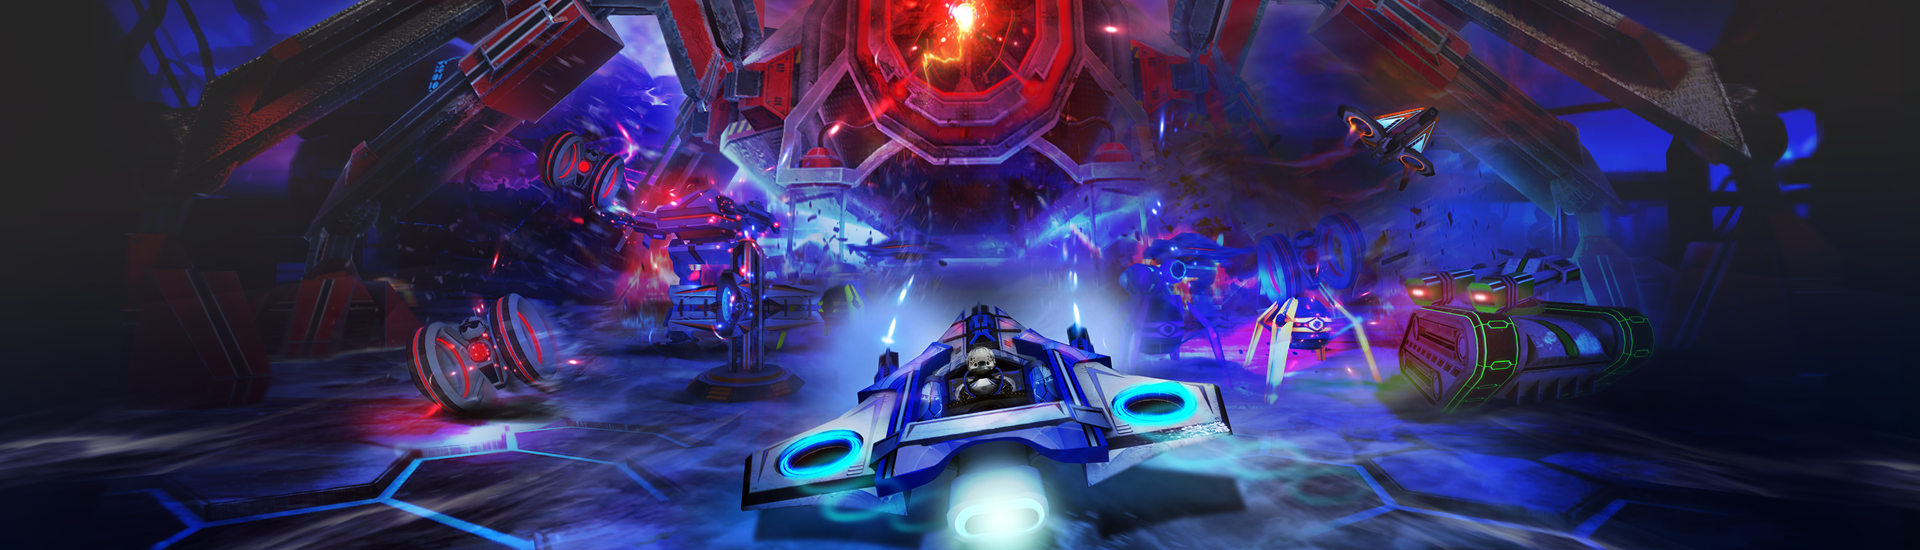 Hovership Havoc cover